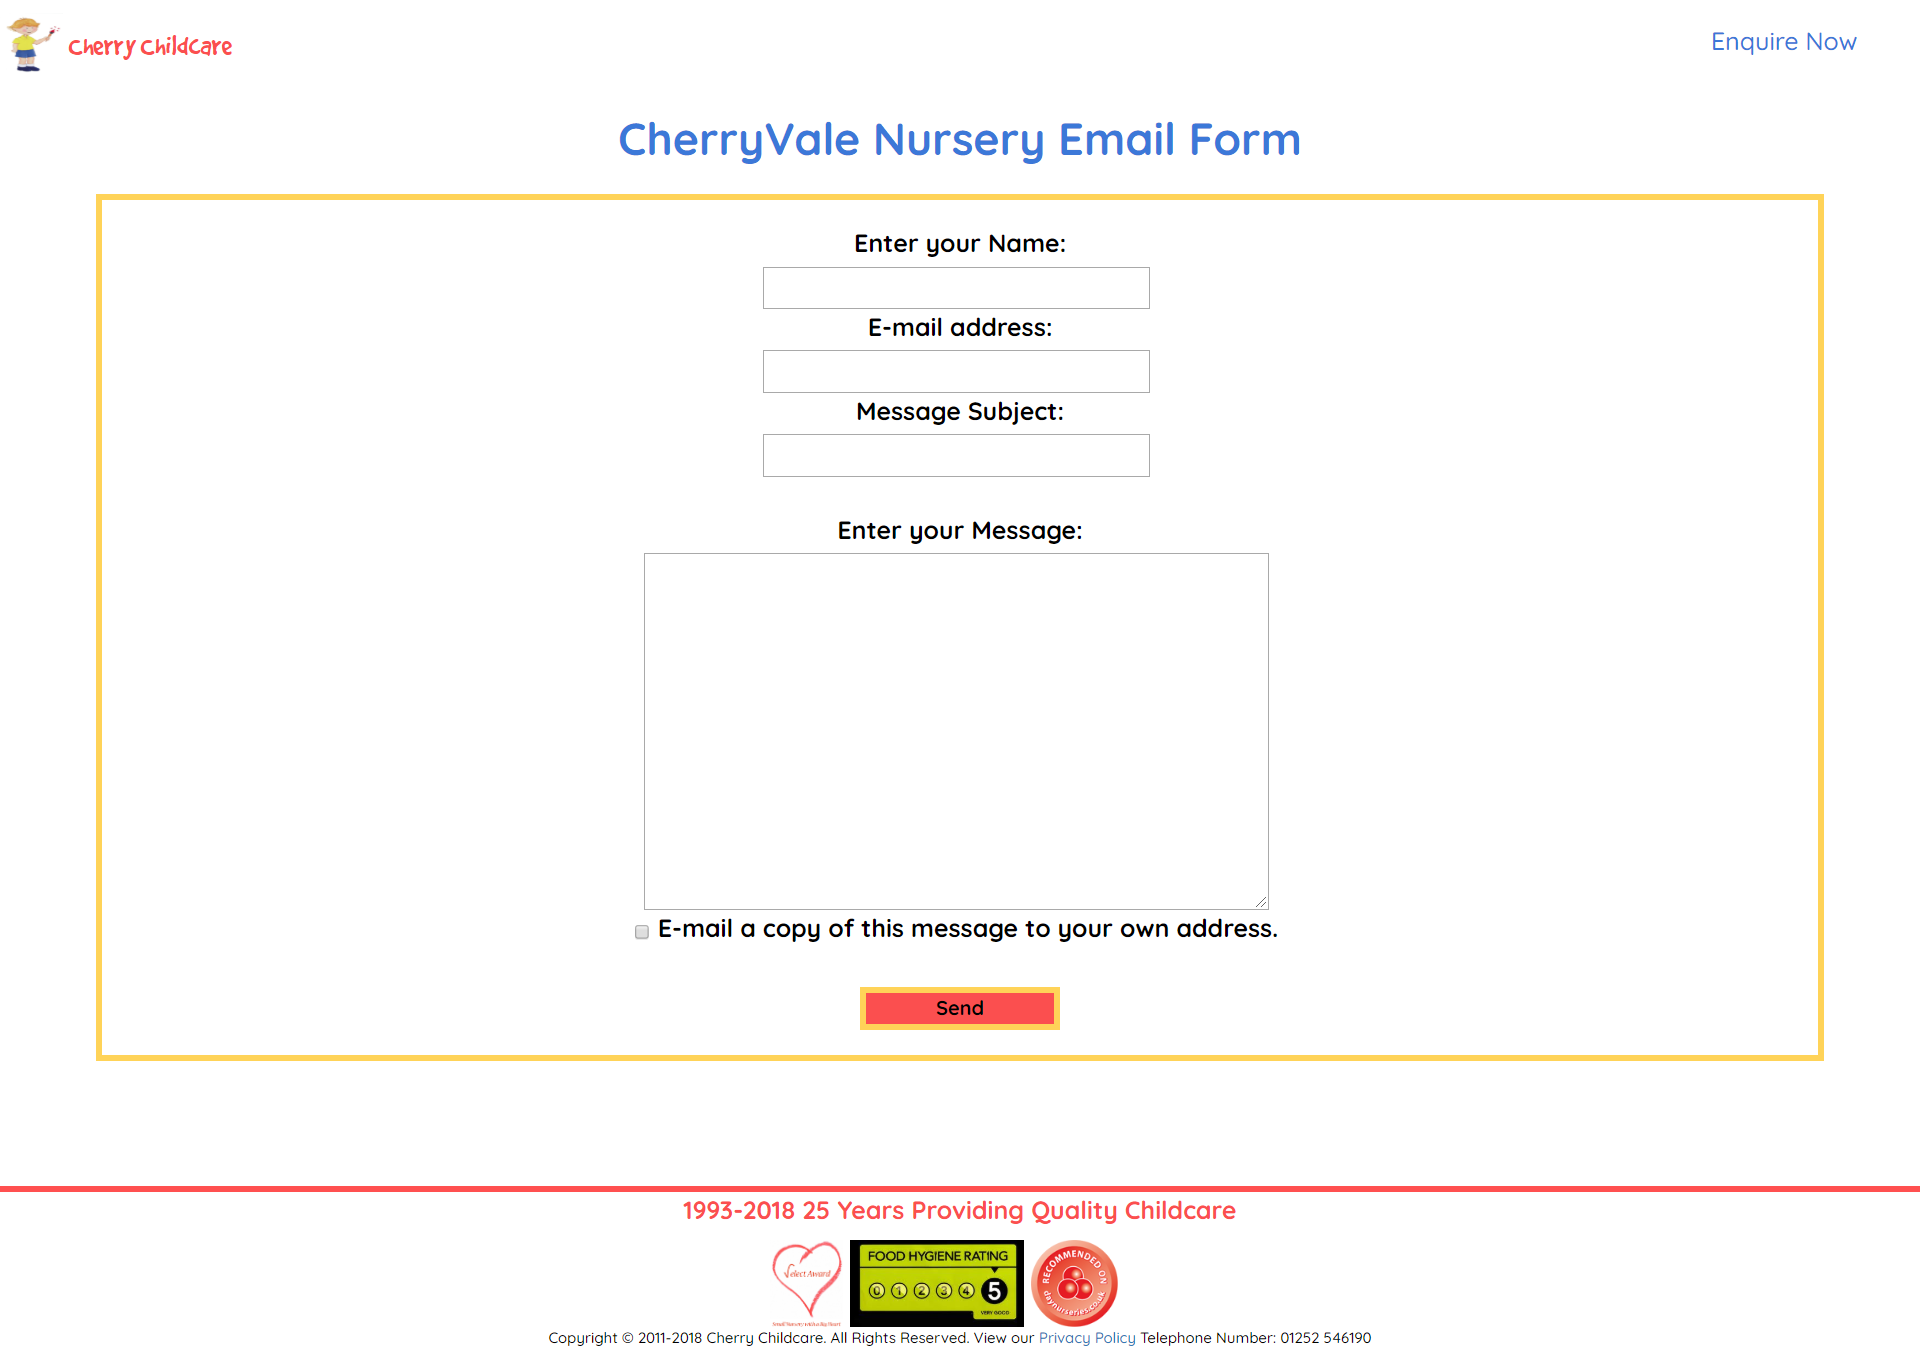 The Individual Nursery Email Form Page ('CherryVale' Example)